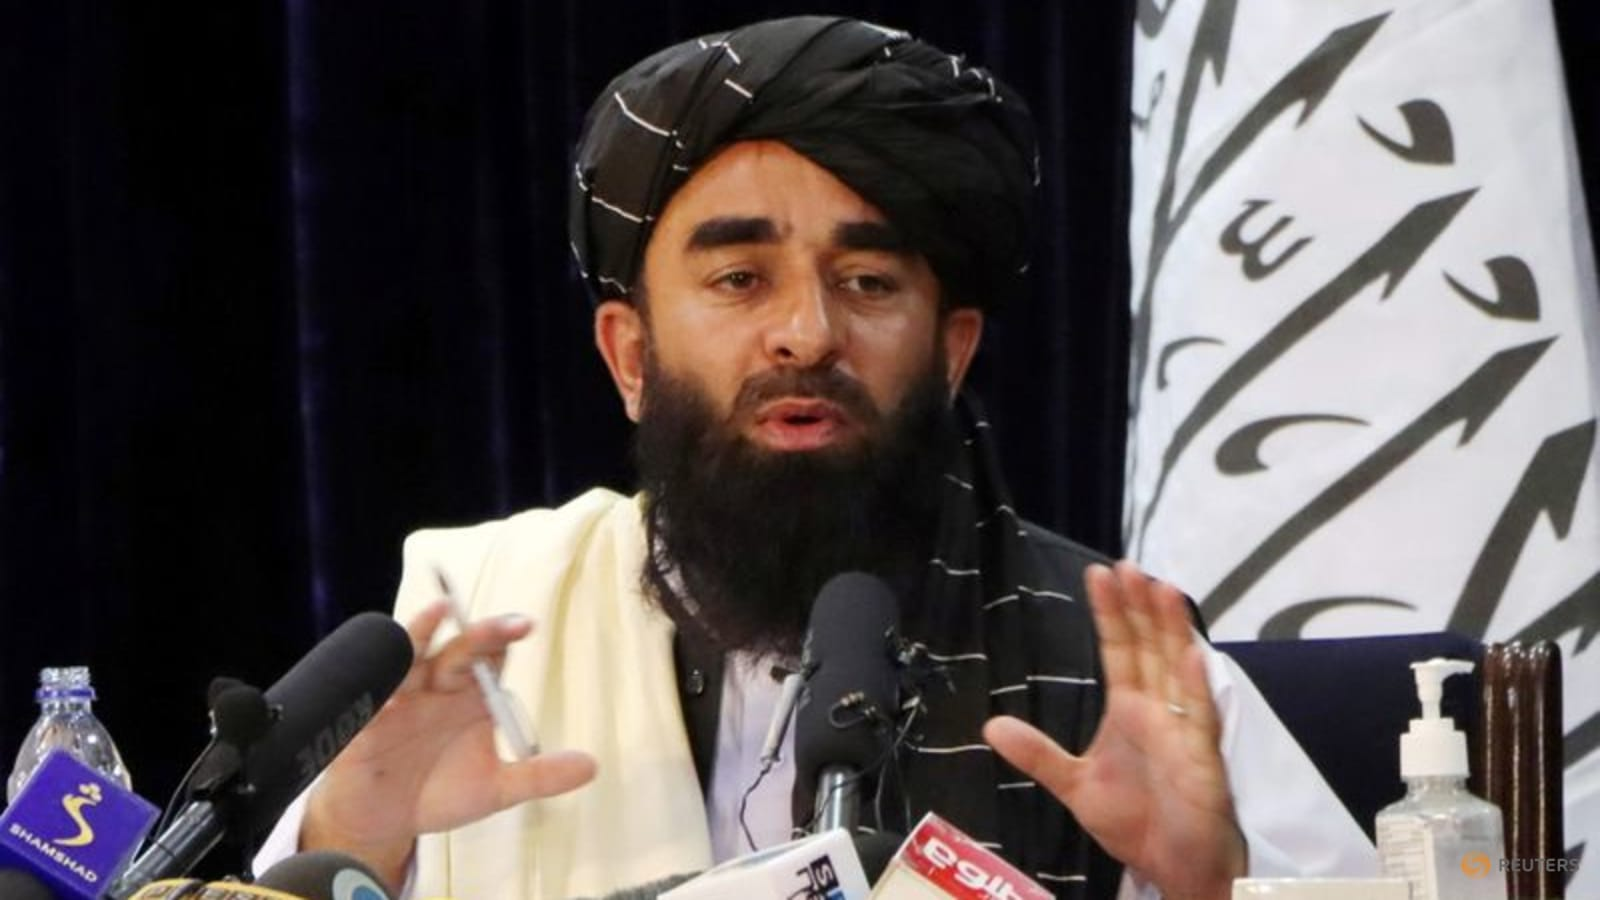 Taliban would take back Europe's Afghan deportees to face courts, says spokesman thumbnail